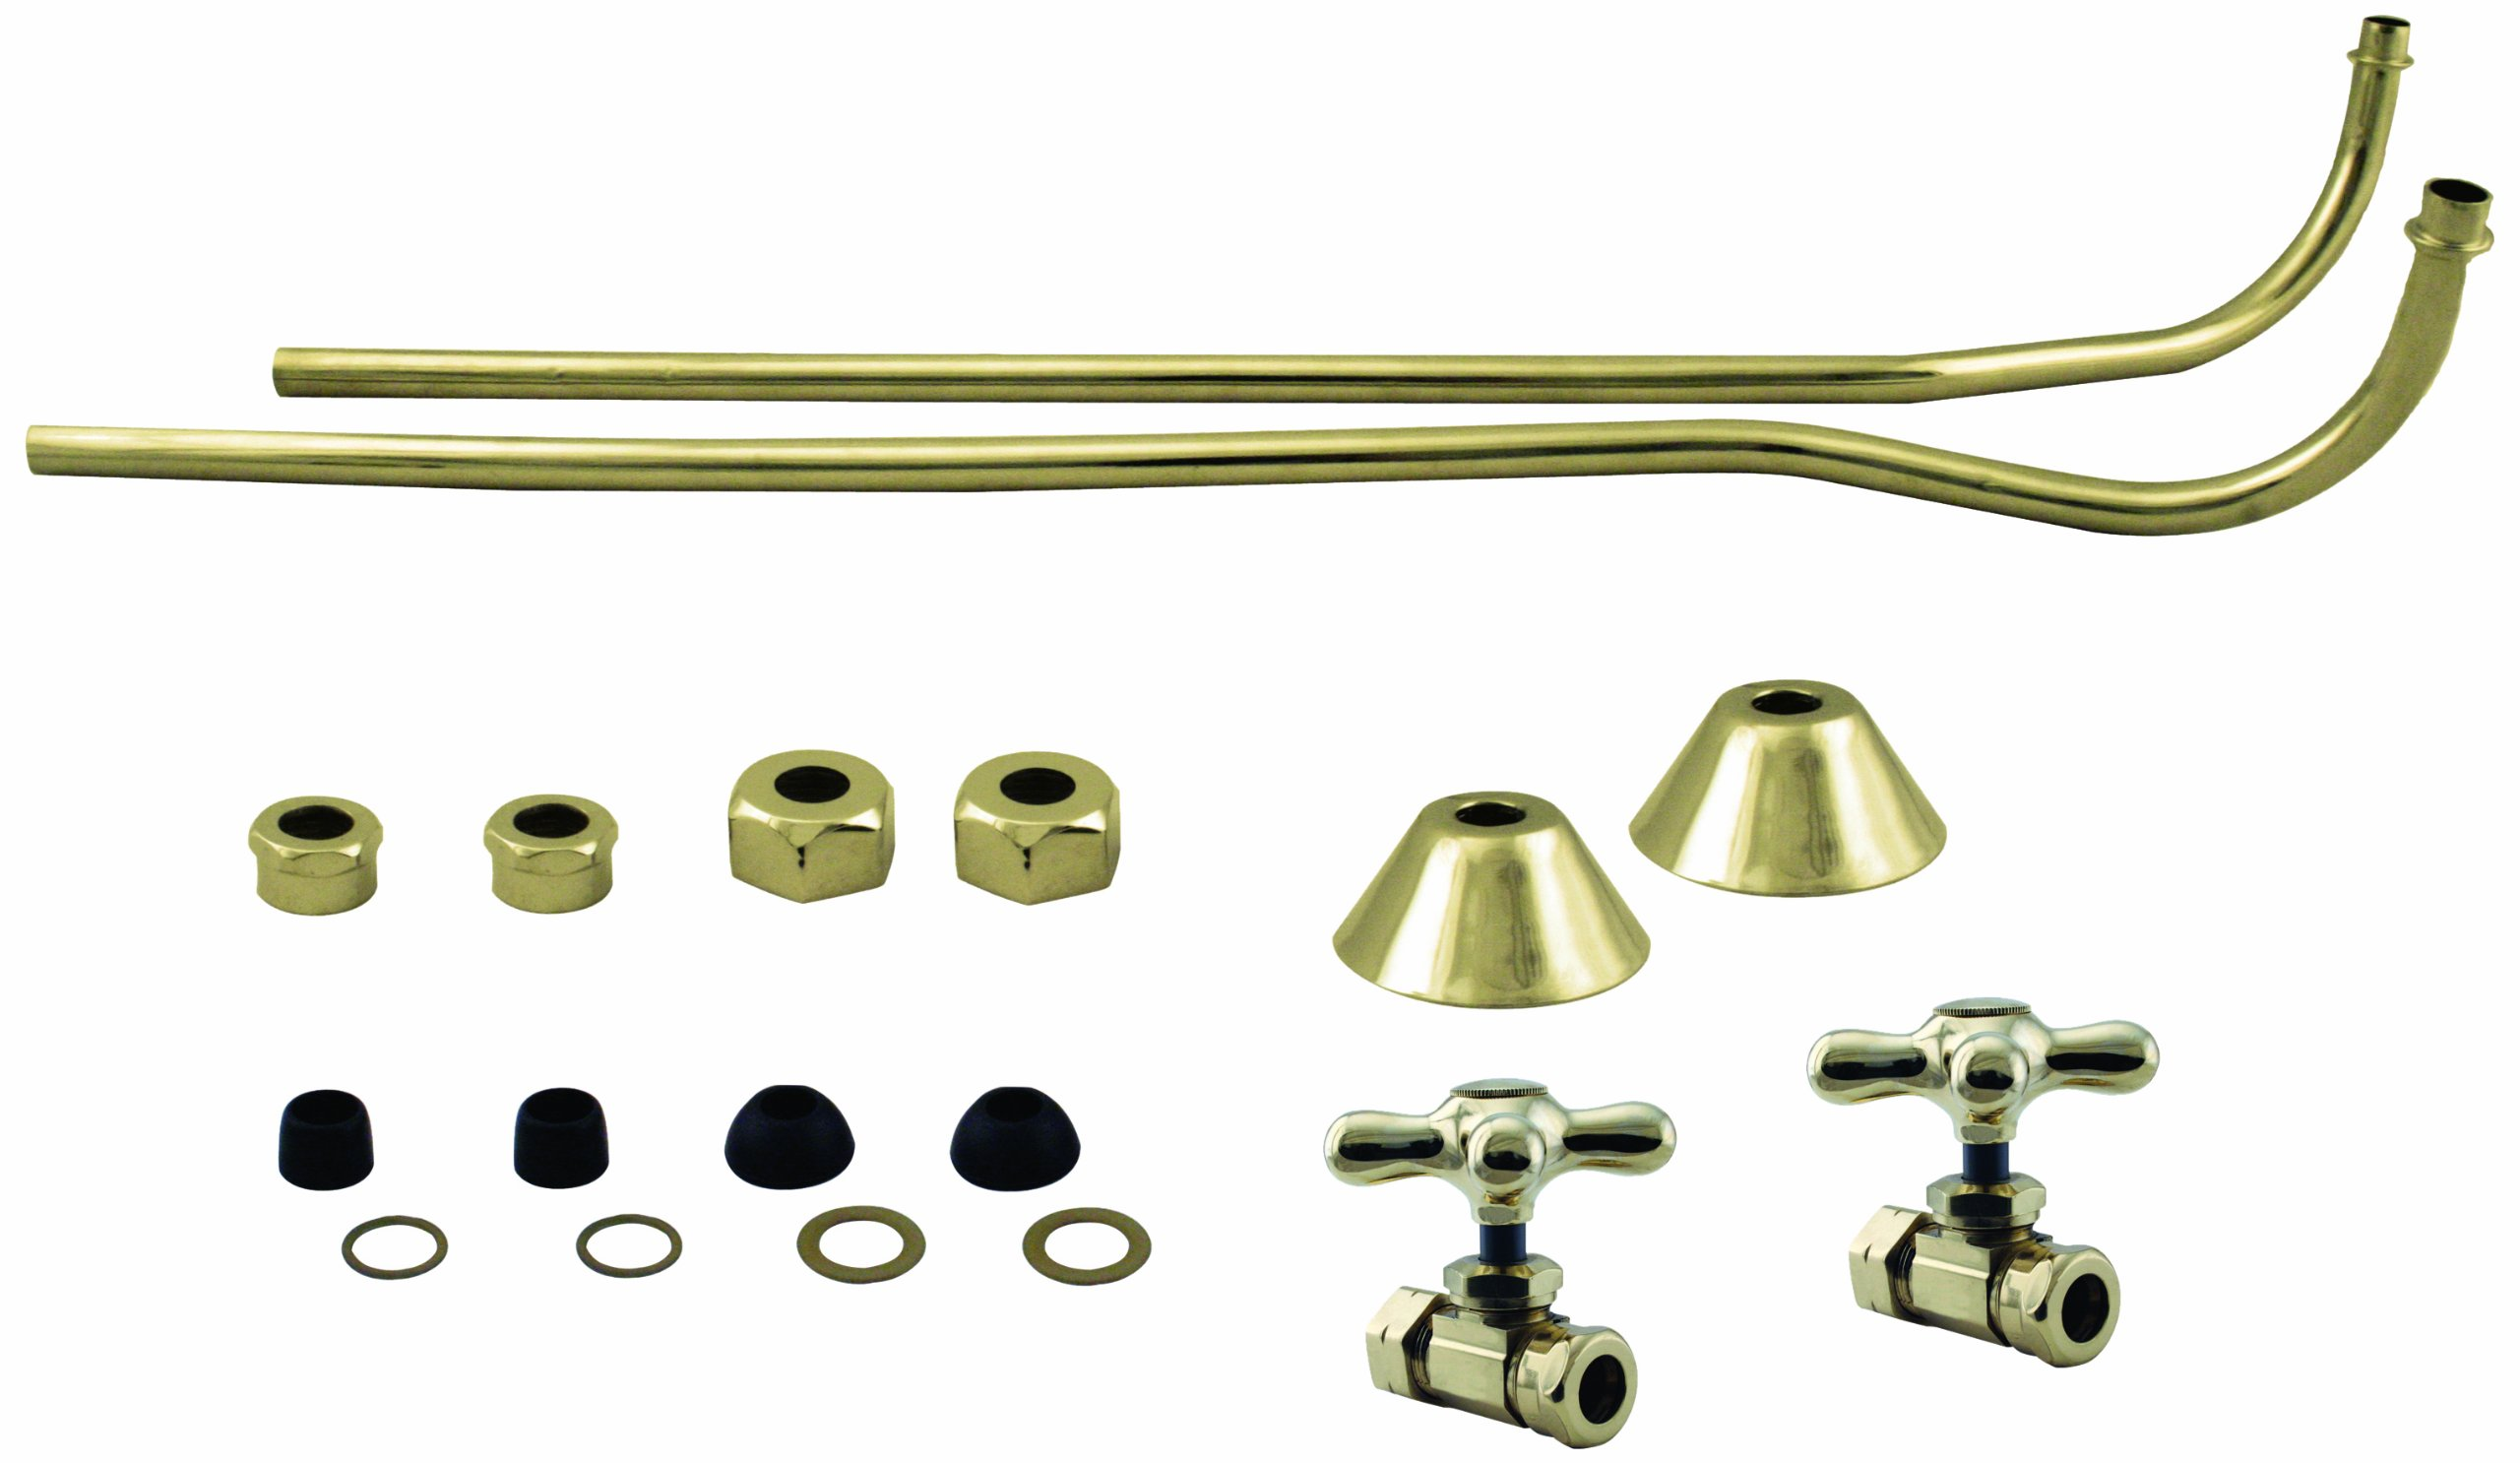 Westbrass 1/2'' Copper Stops & Double Offset Bath Supply with Cross Handles, Polished Brass, D136-110X-01